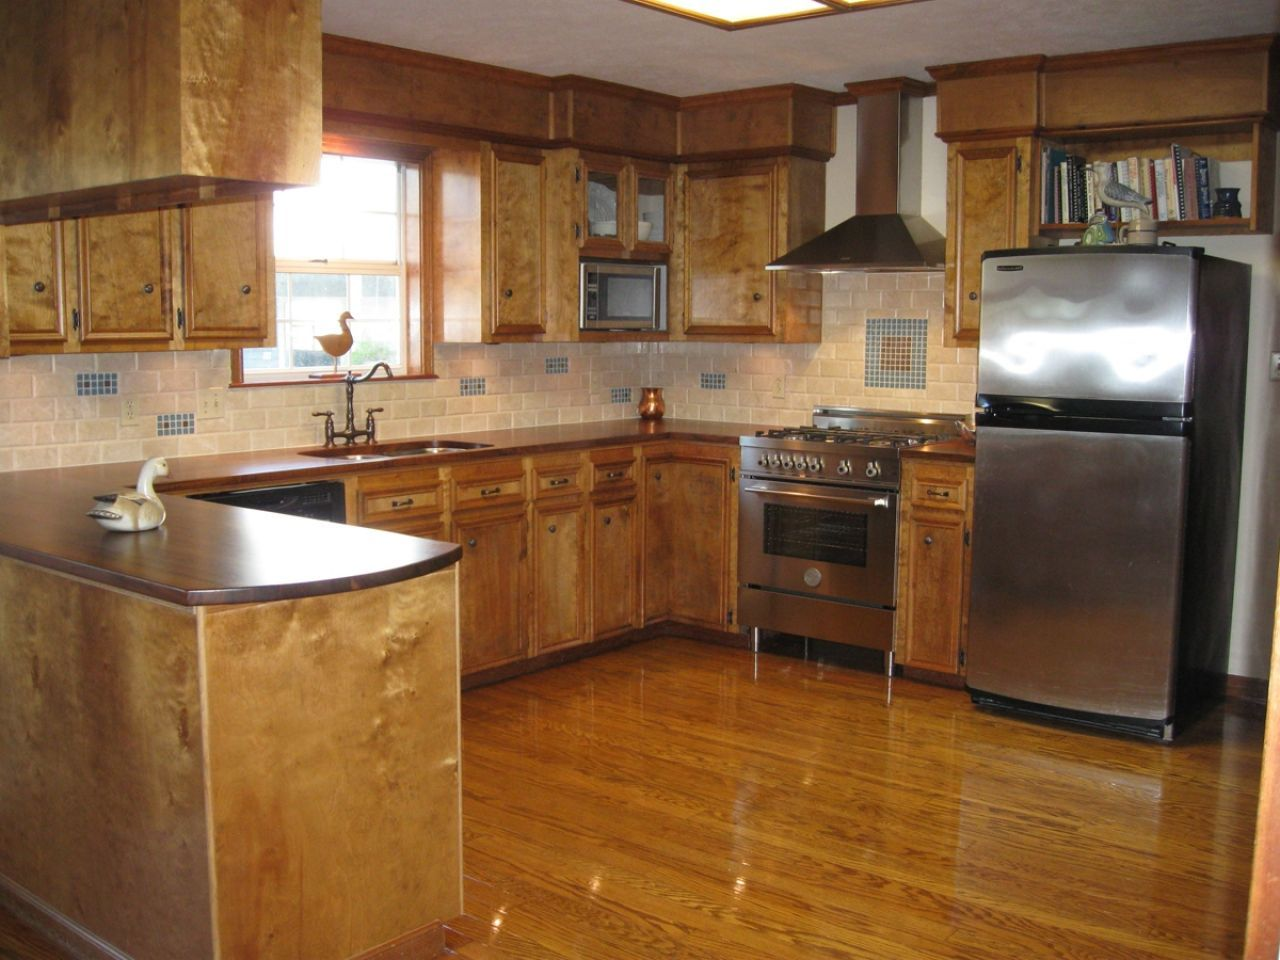 Kitchen Remodel For Older Homes Kitchen Remodel Ideas Google Search Kithcne Ideas Pinterest